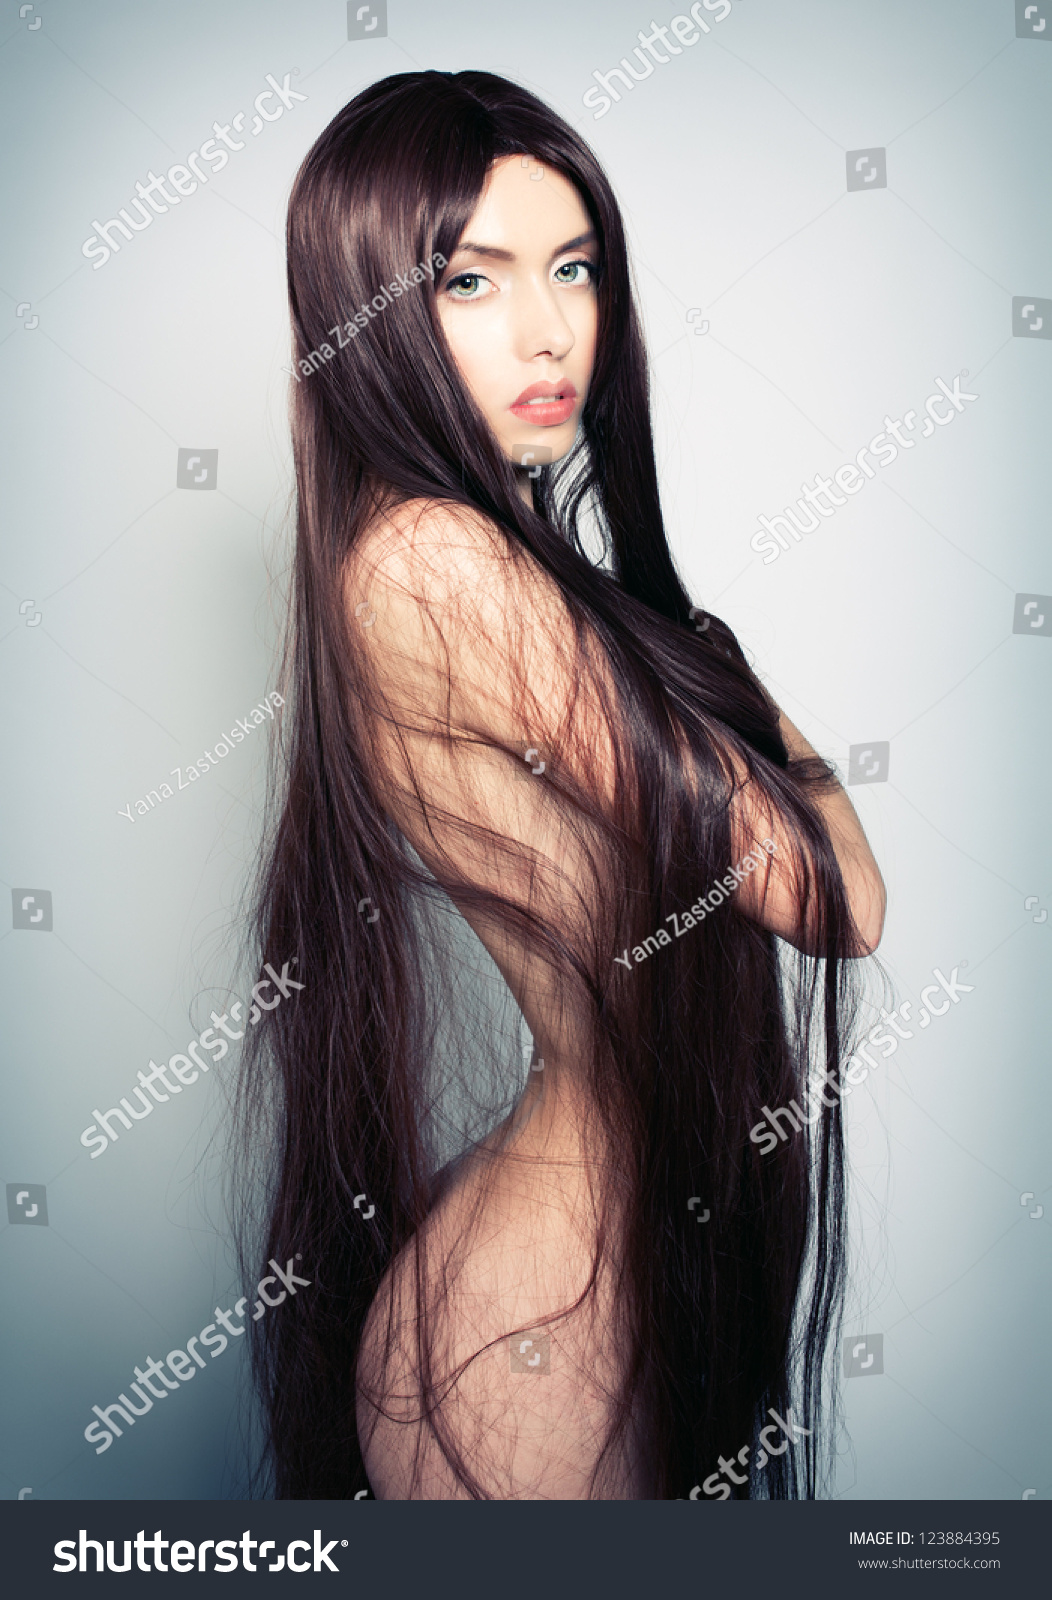 Remarkable, rather nude girls with long hair accept. interesting